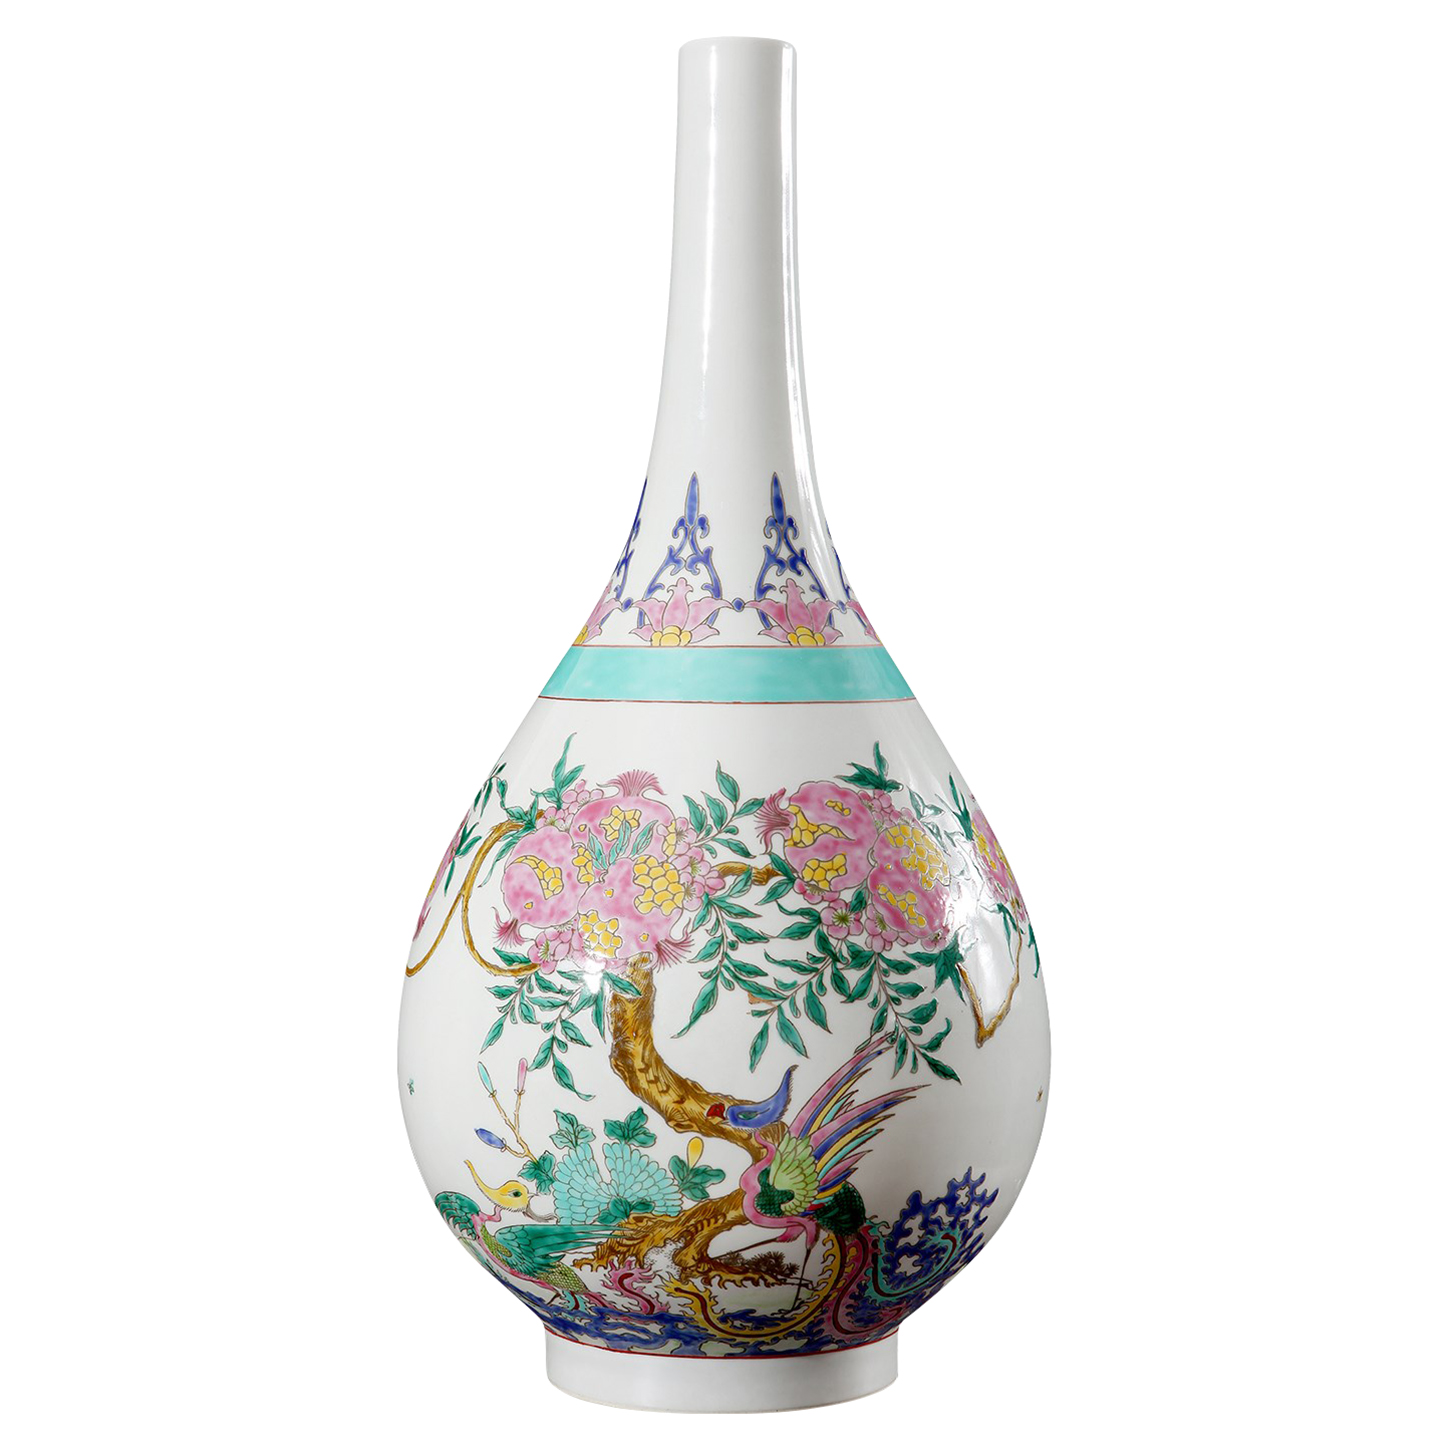 Fuu Global Bazaar Pink Pomegranate Tear Drop Porcelain Vase